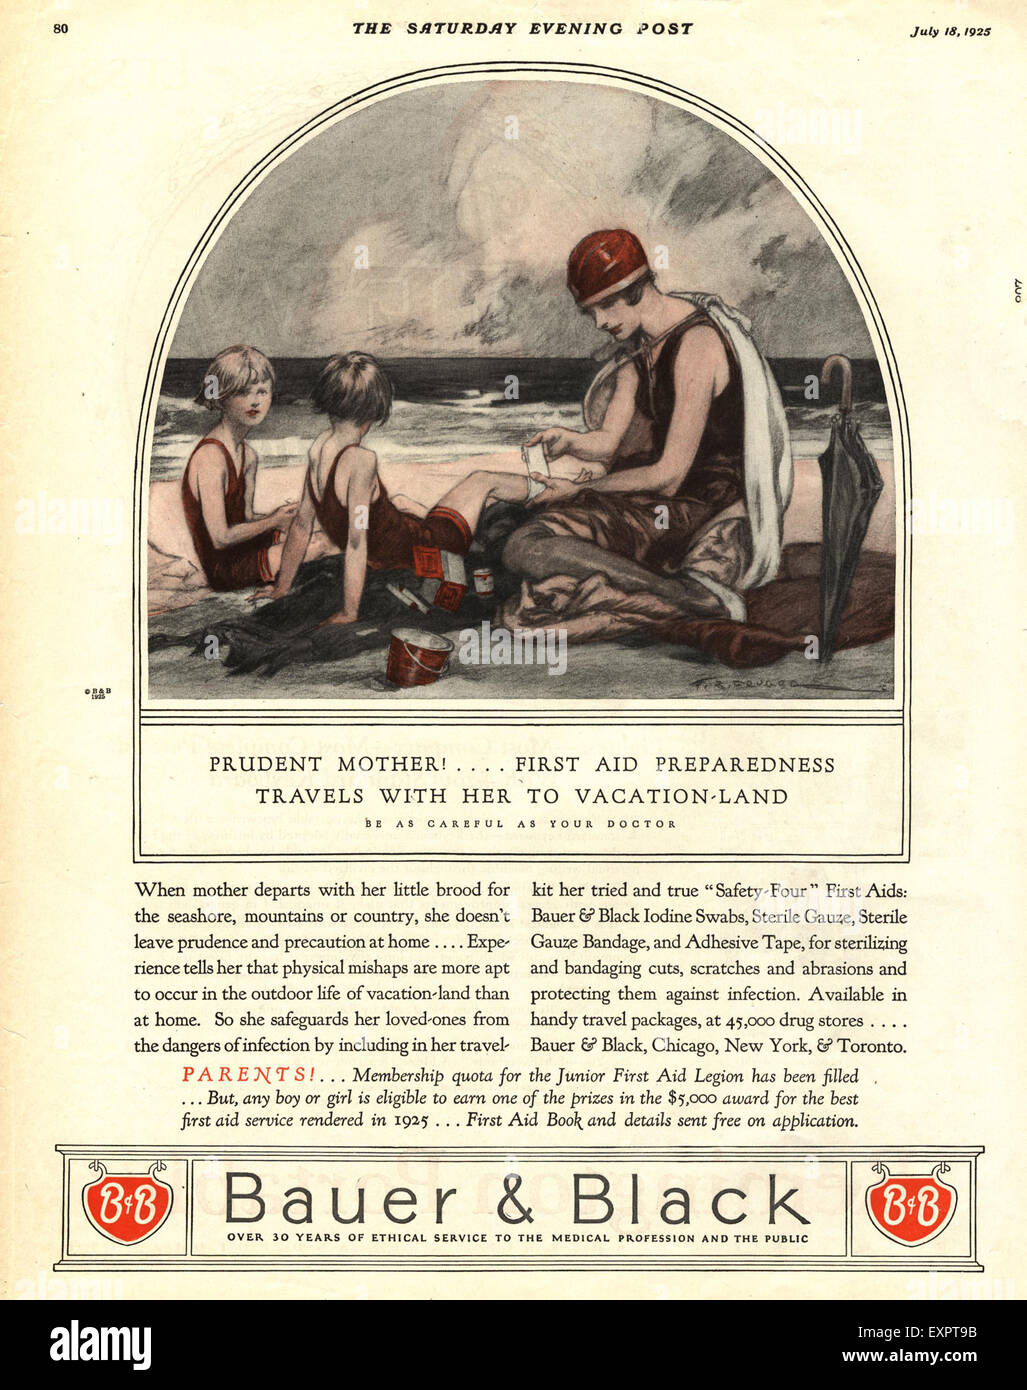 1920s USA Bauer and Black Magazine Advert - Stock Image